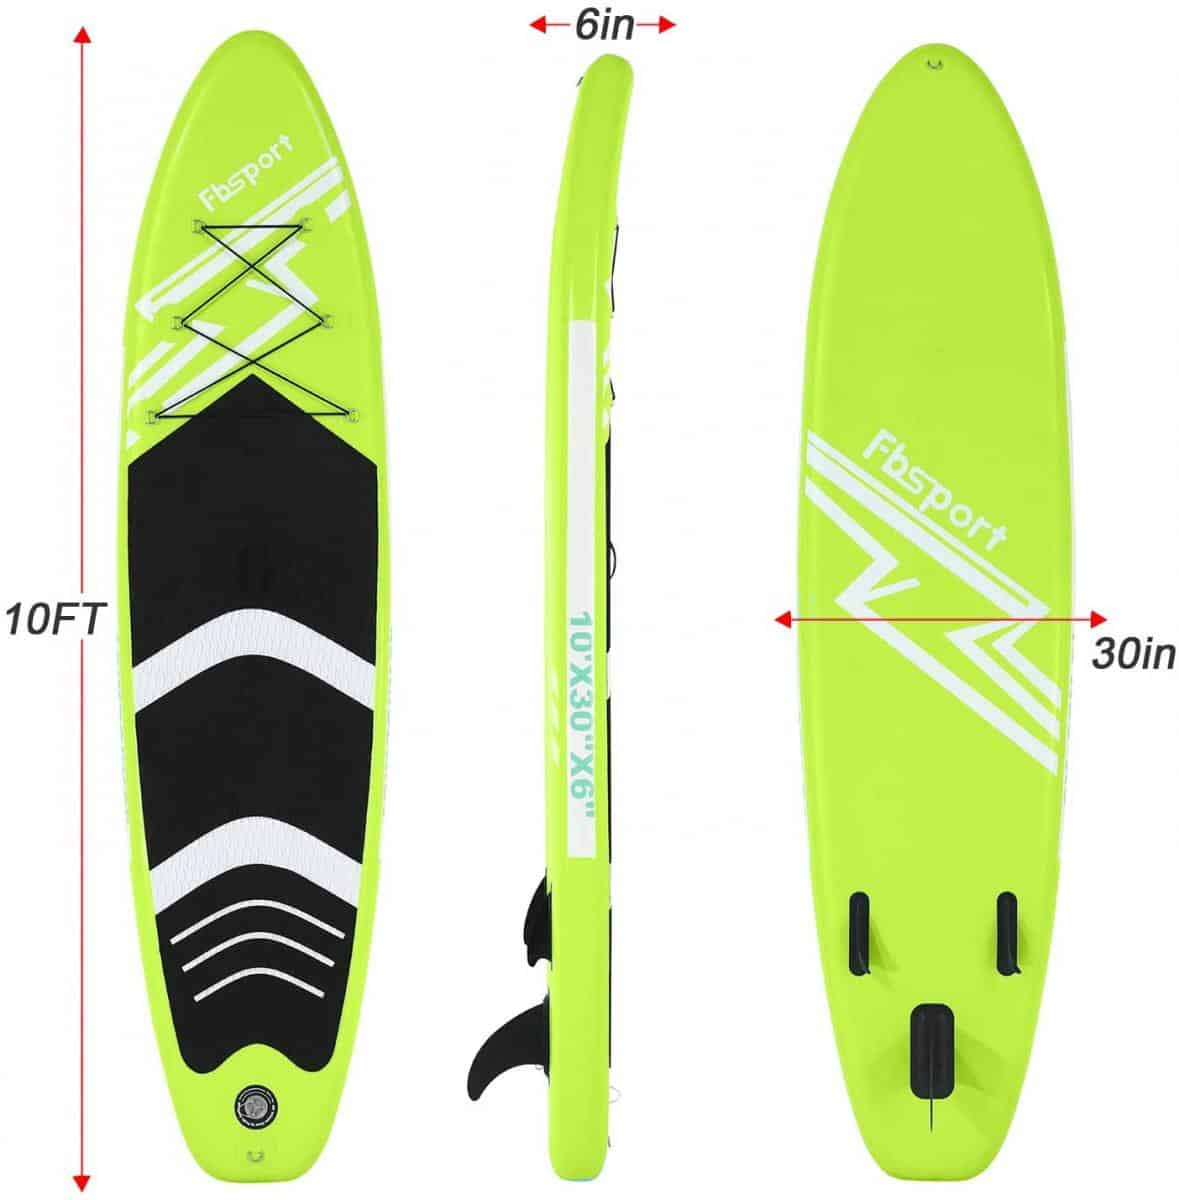 FBSPORT 10'/10.6' Premium Inflatable Stand Up Paddle Board, Yoga Baord With Durable SUP Accessories & Carry Bag | Wide Stance, Surf Control, Non-Slip Deck, Leash, Paddle And Pump For Youth & Adult Apple Green Review Image 4